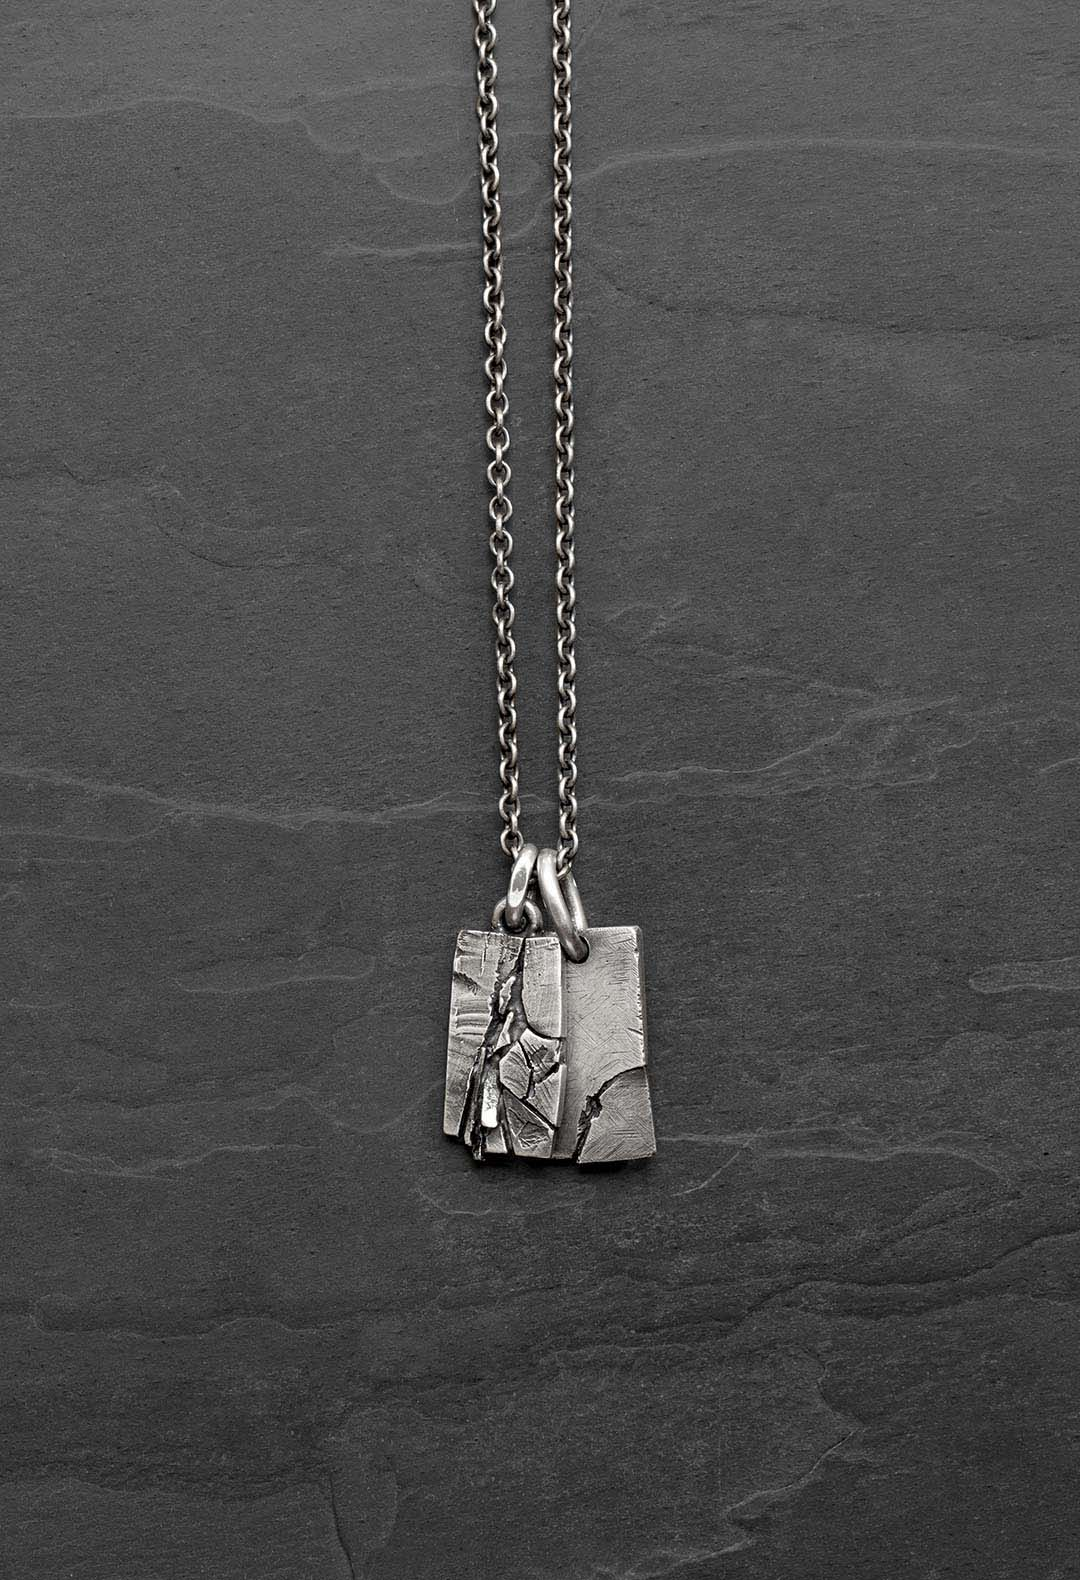 Fractured pendents necklace